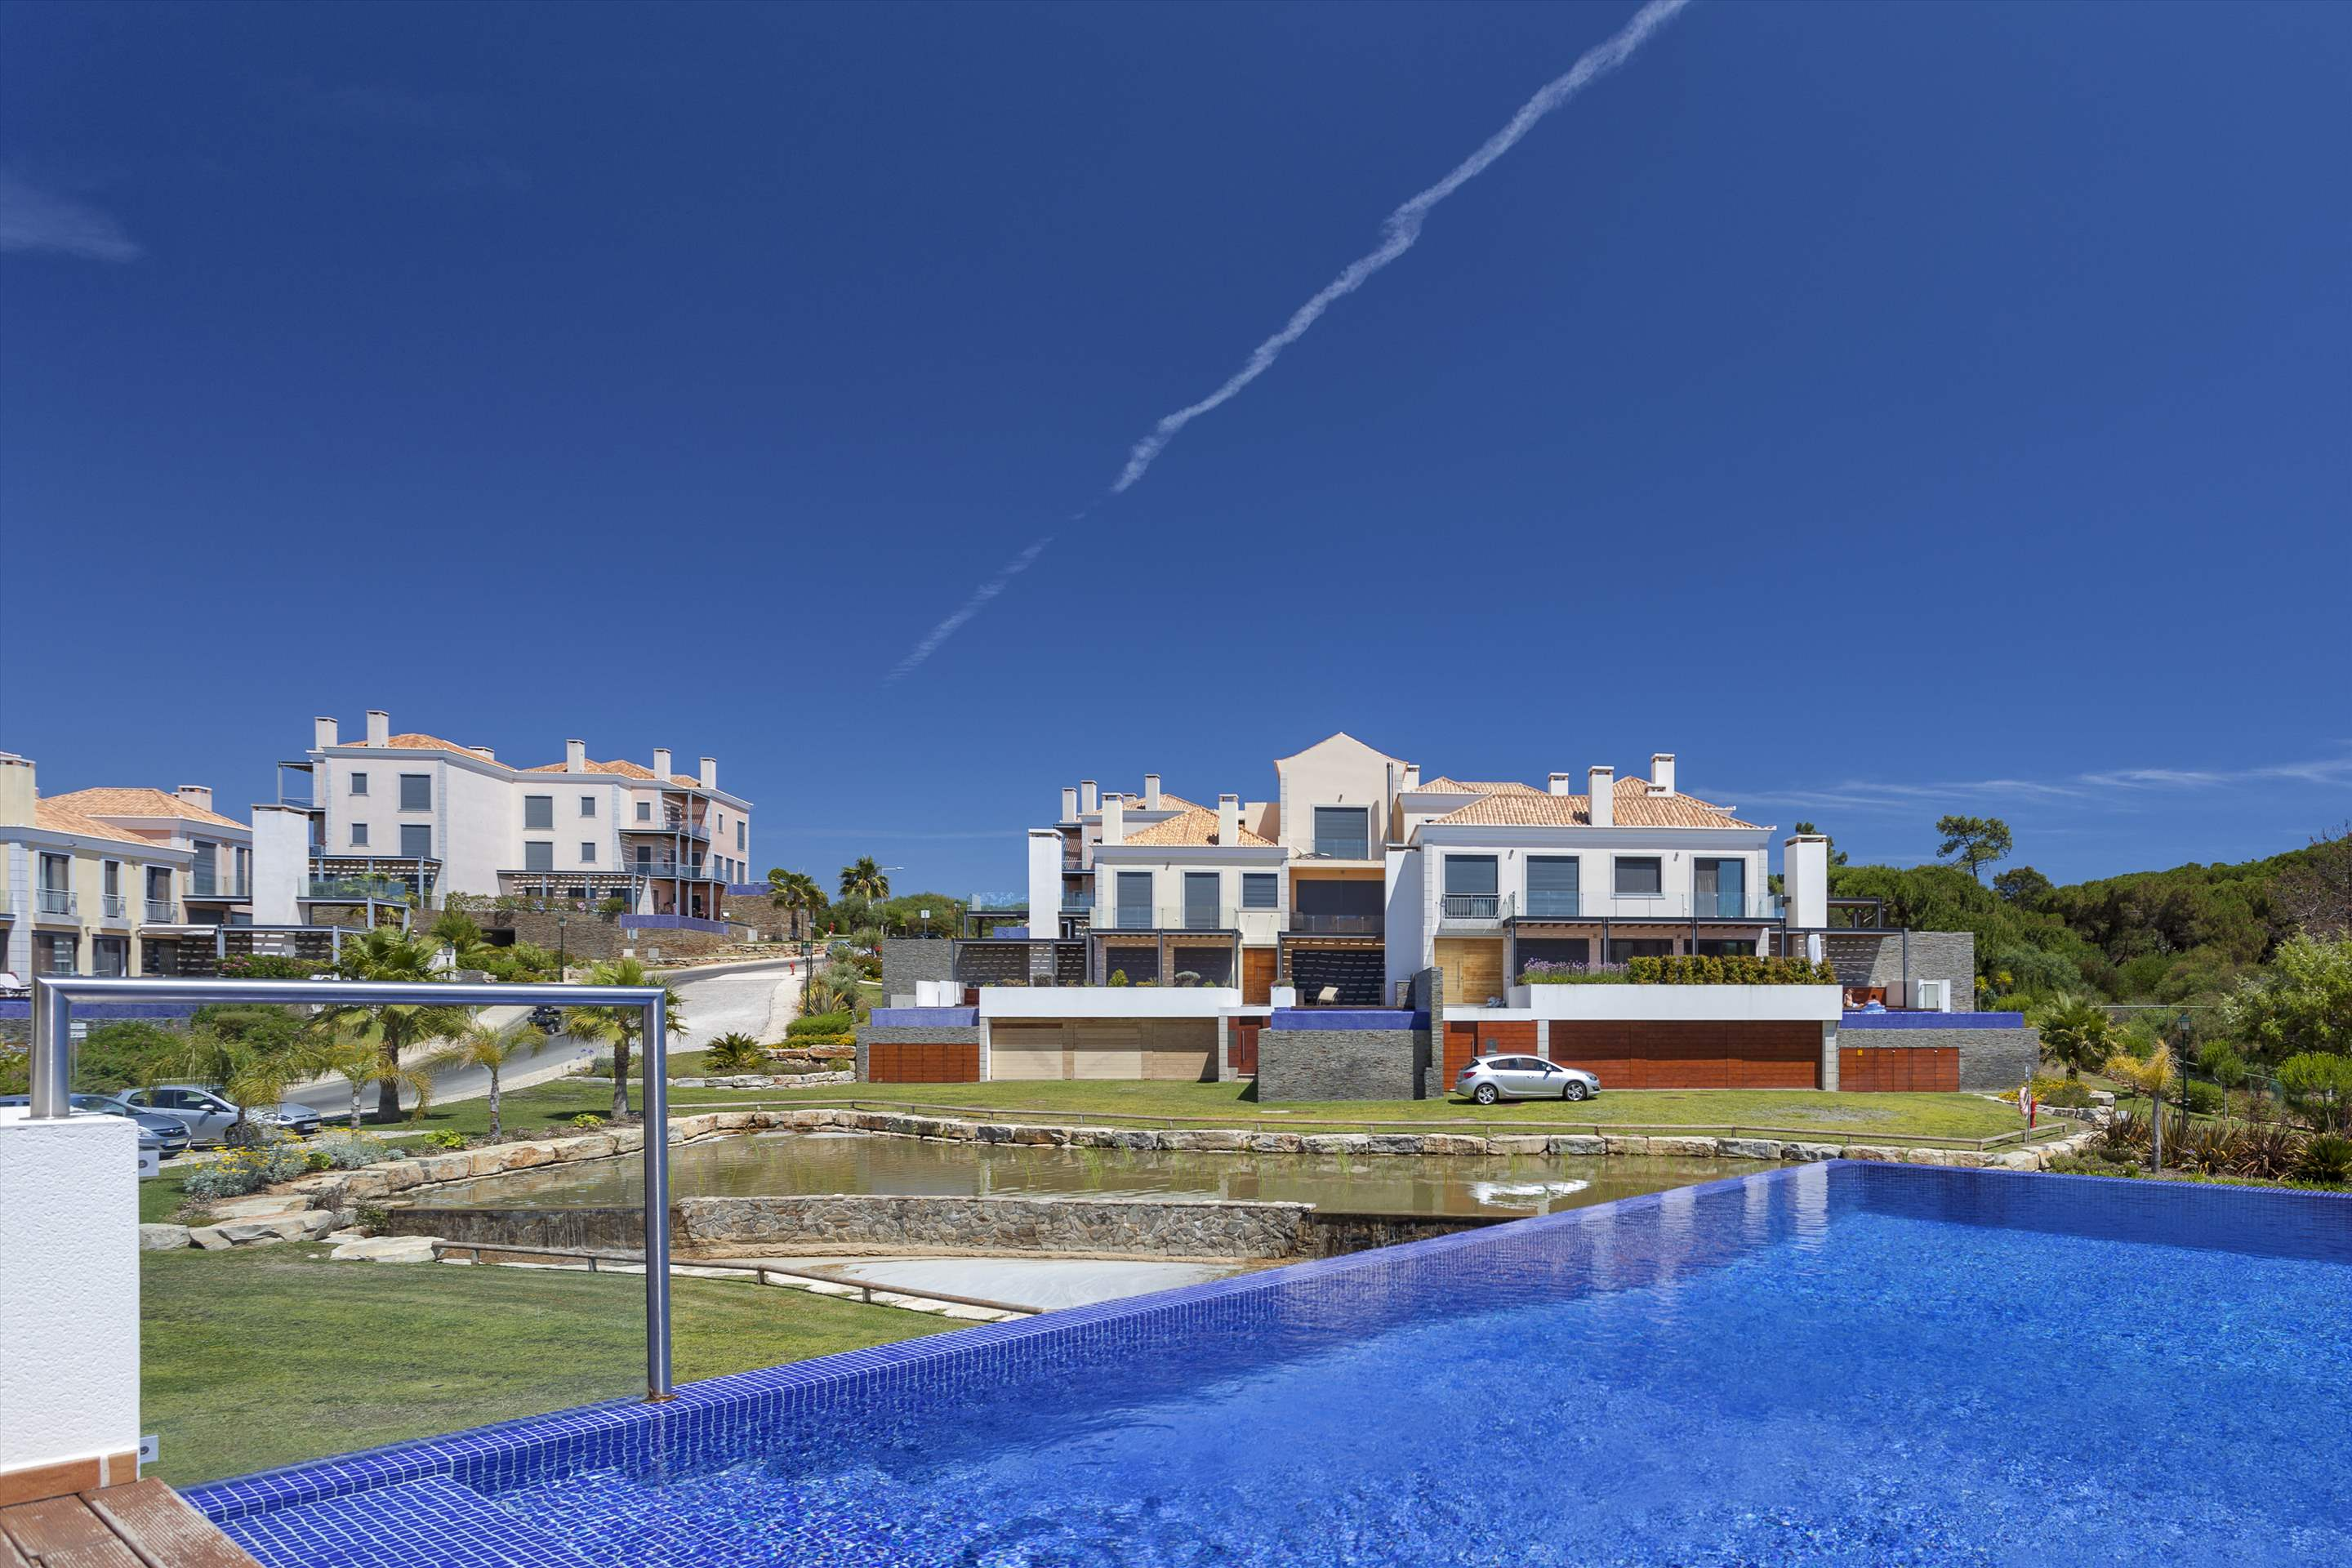 Villa Emily, 3 bedroom villa in Vale do Lobo, Algarve Photo #10